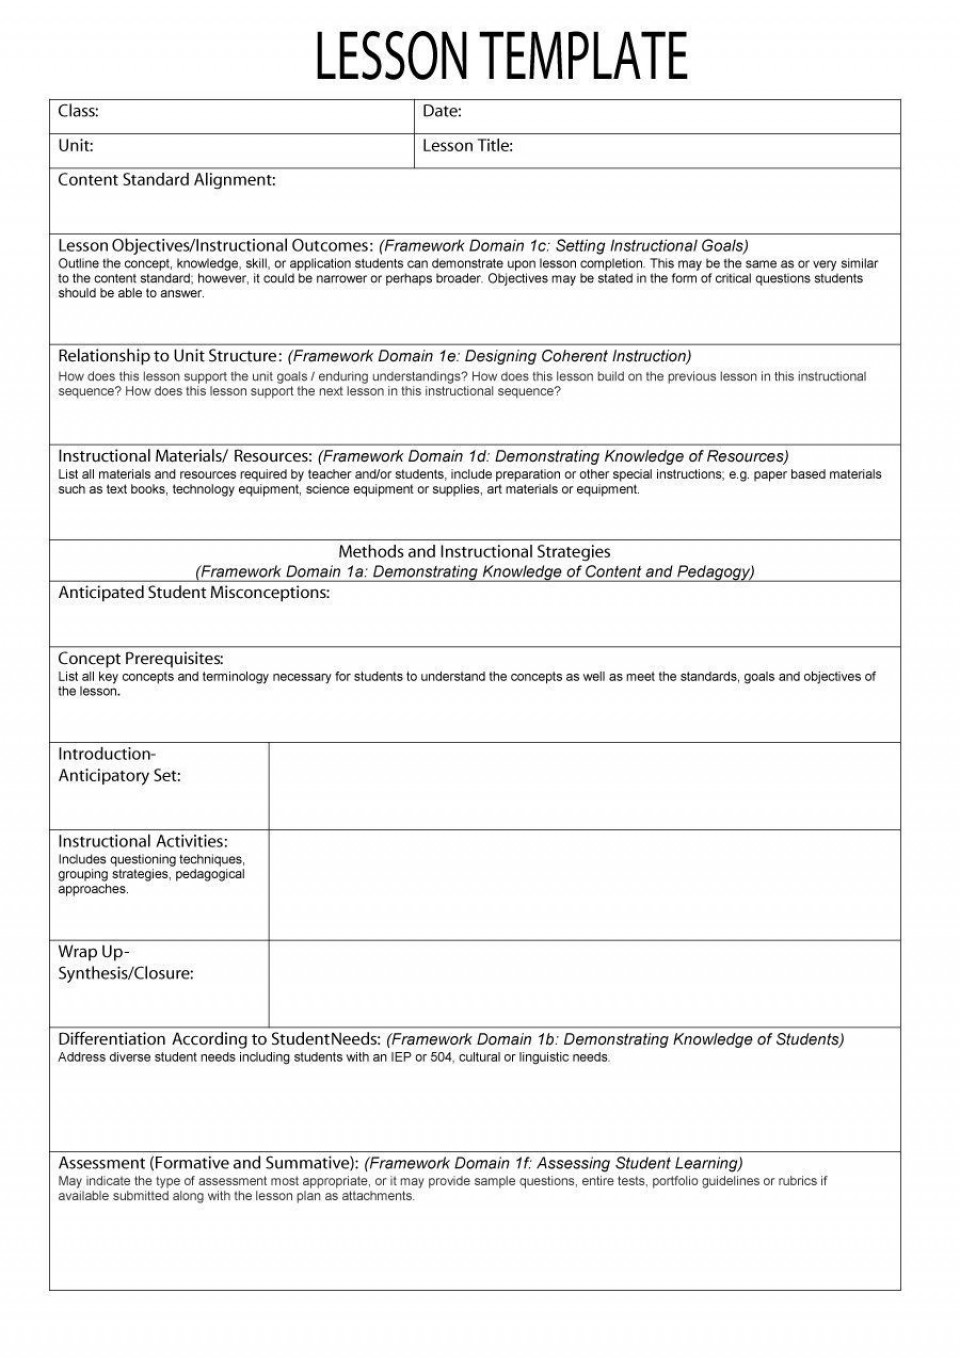 001 Simple Lesson Plan Template Pdf Photo  Free Printable Format In English960